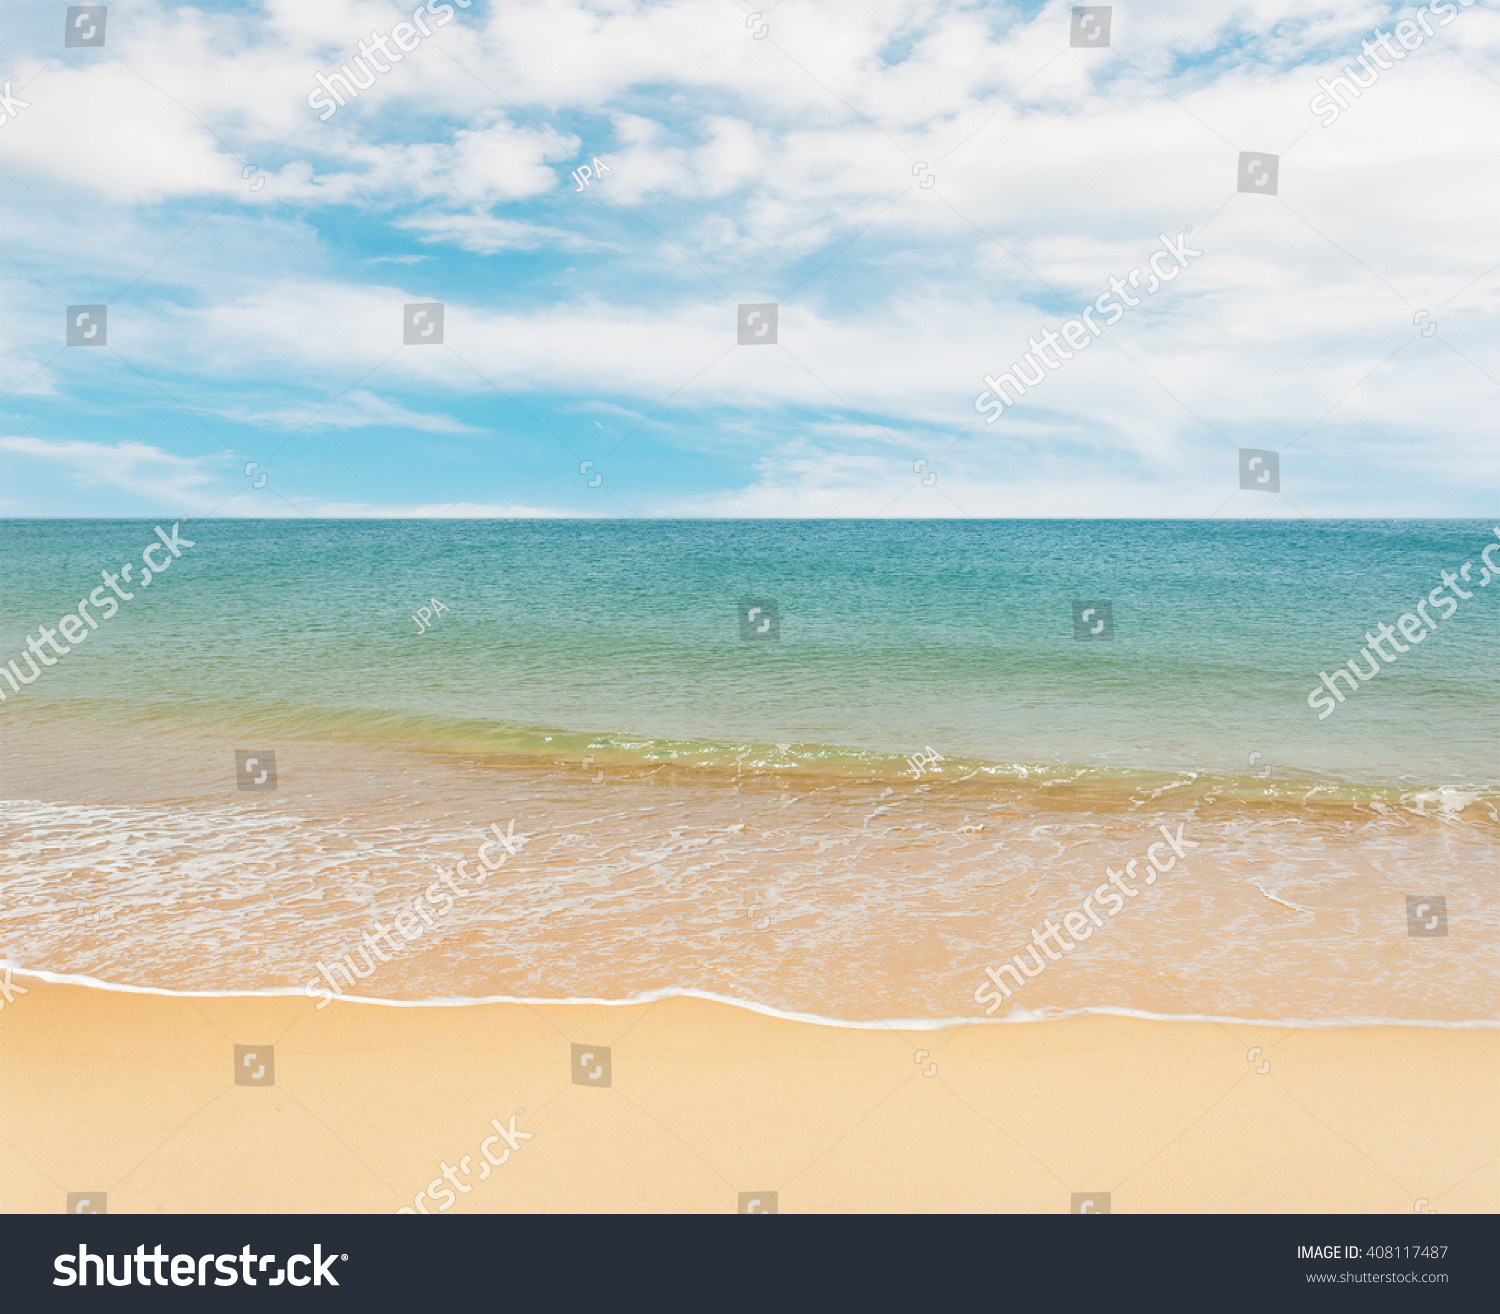 Sand Beach In Summer Sky Background: Blue Sea White Sand Beach On Stock Photo 408117487